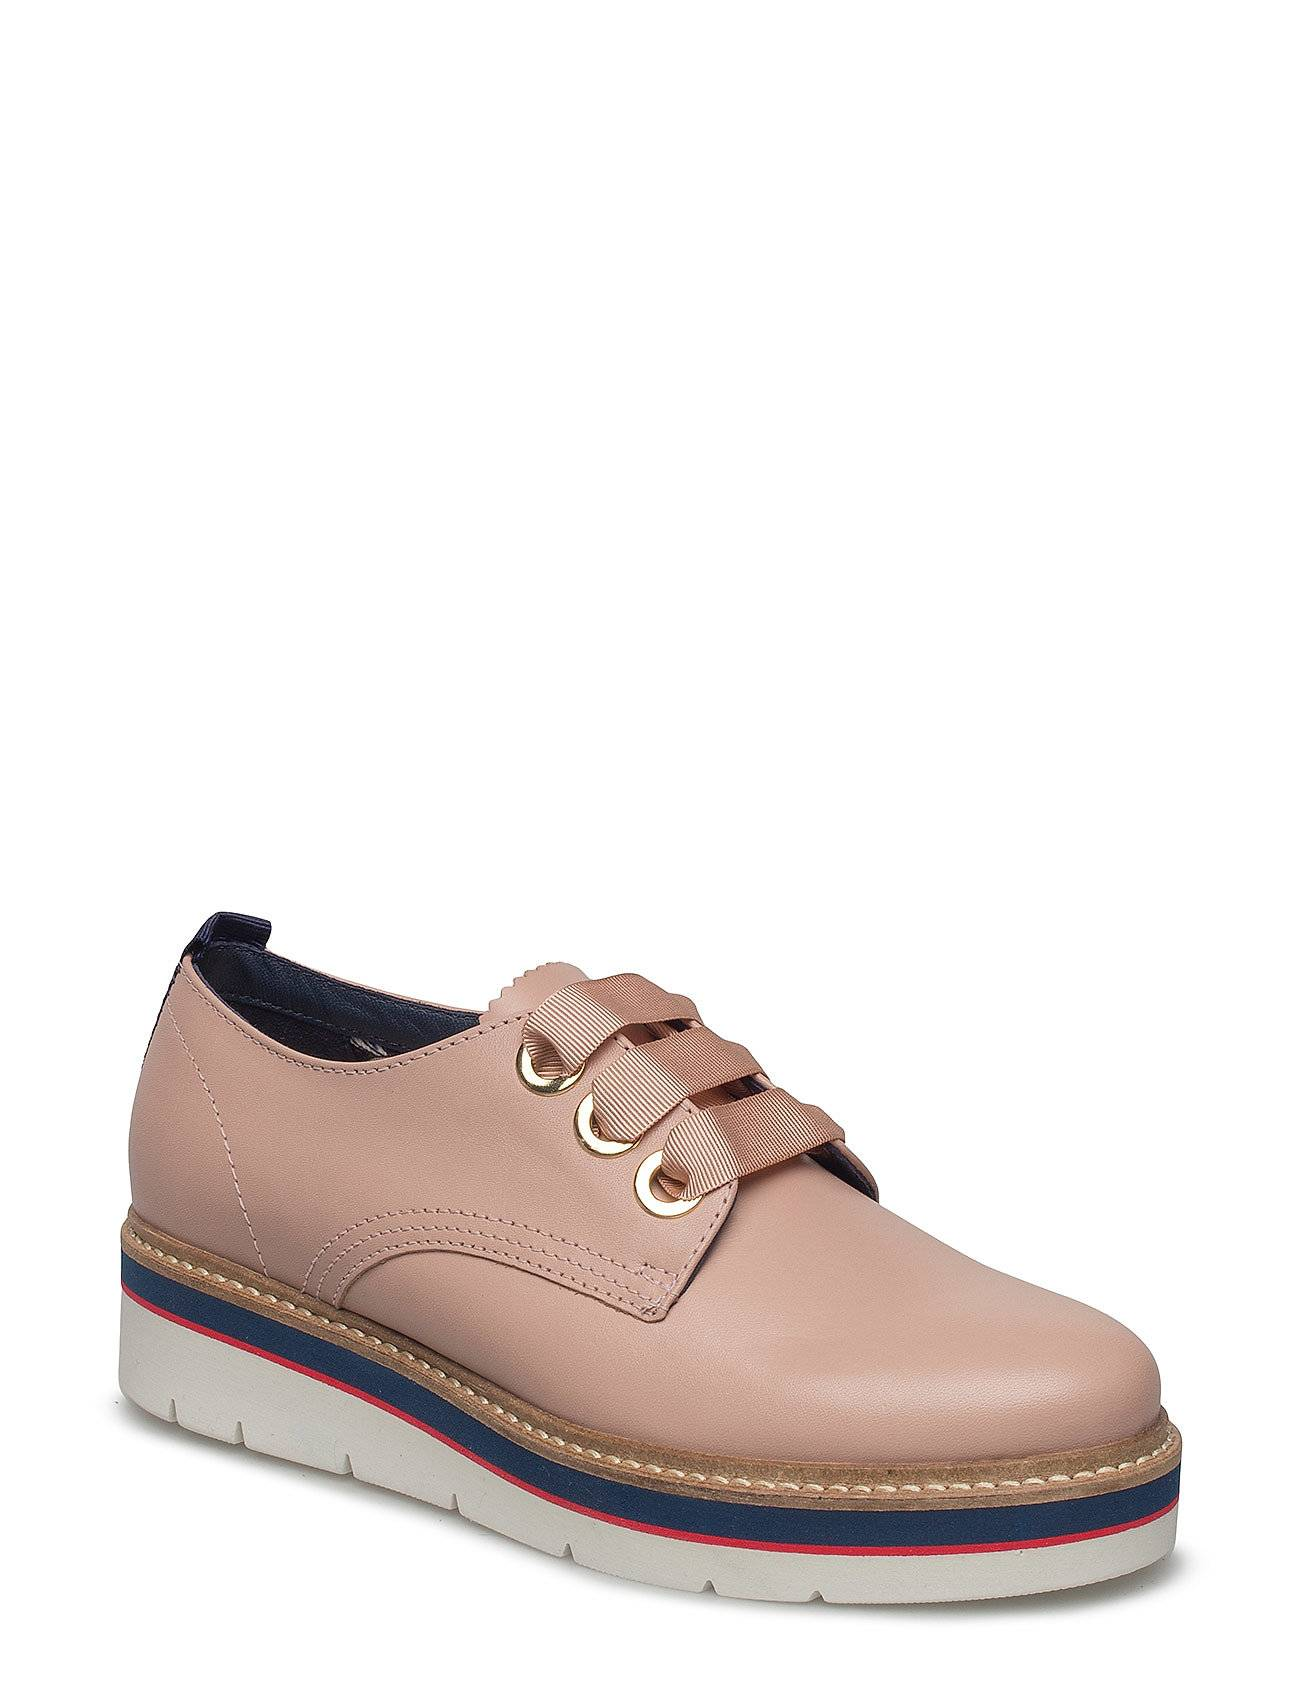 Tommy Hilfiger M1285anon 4a